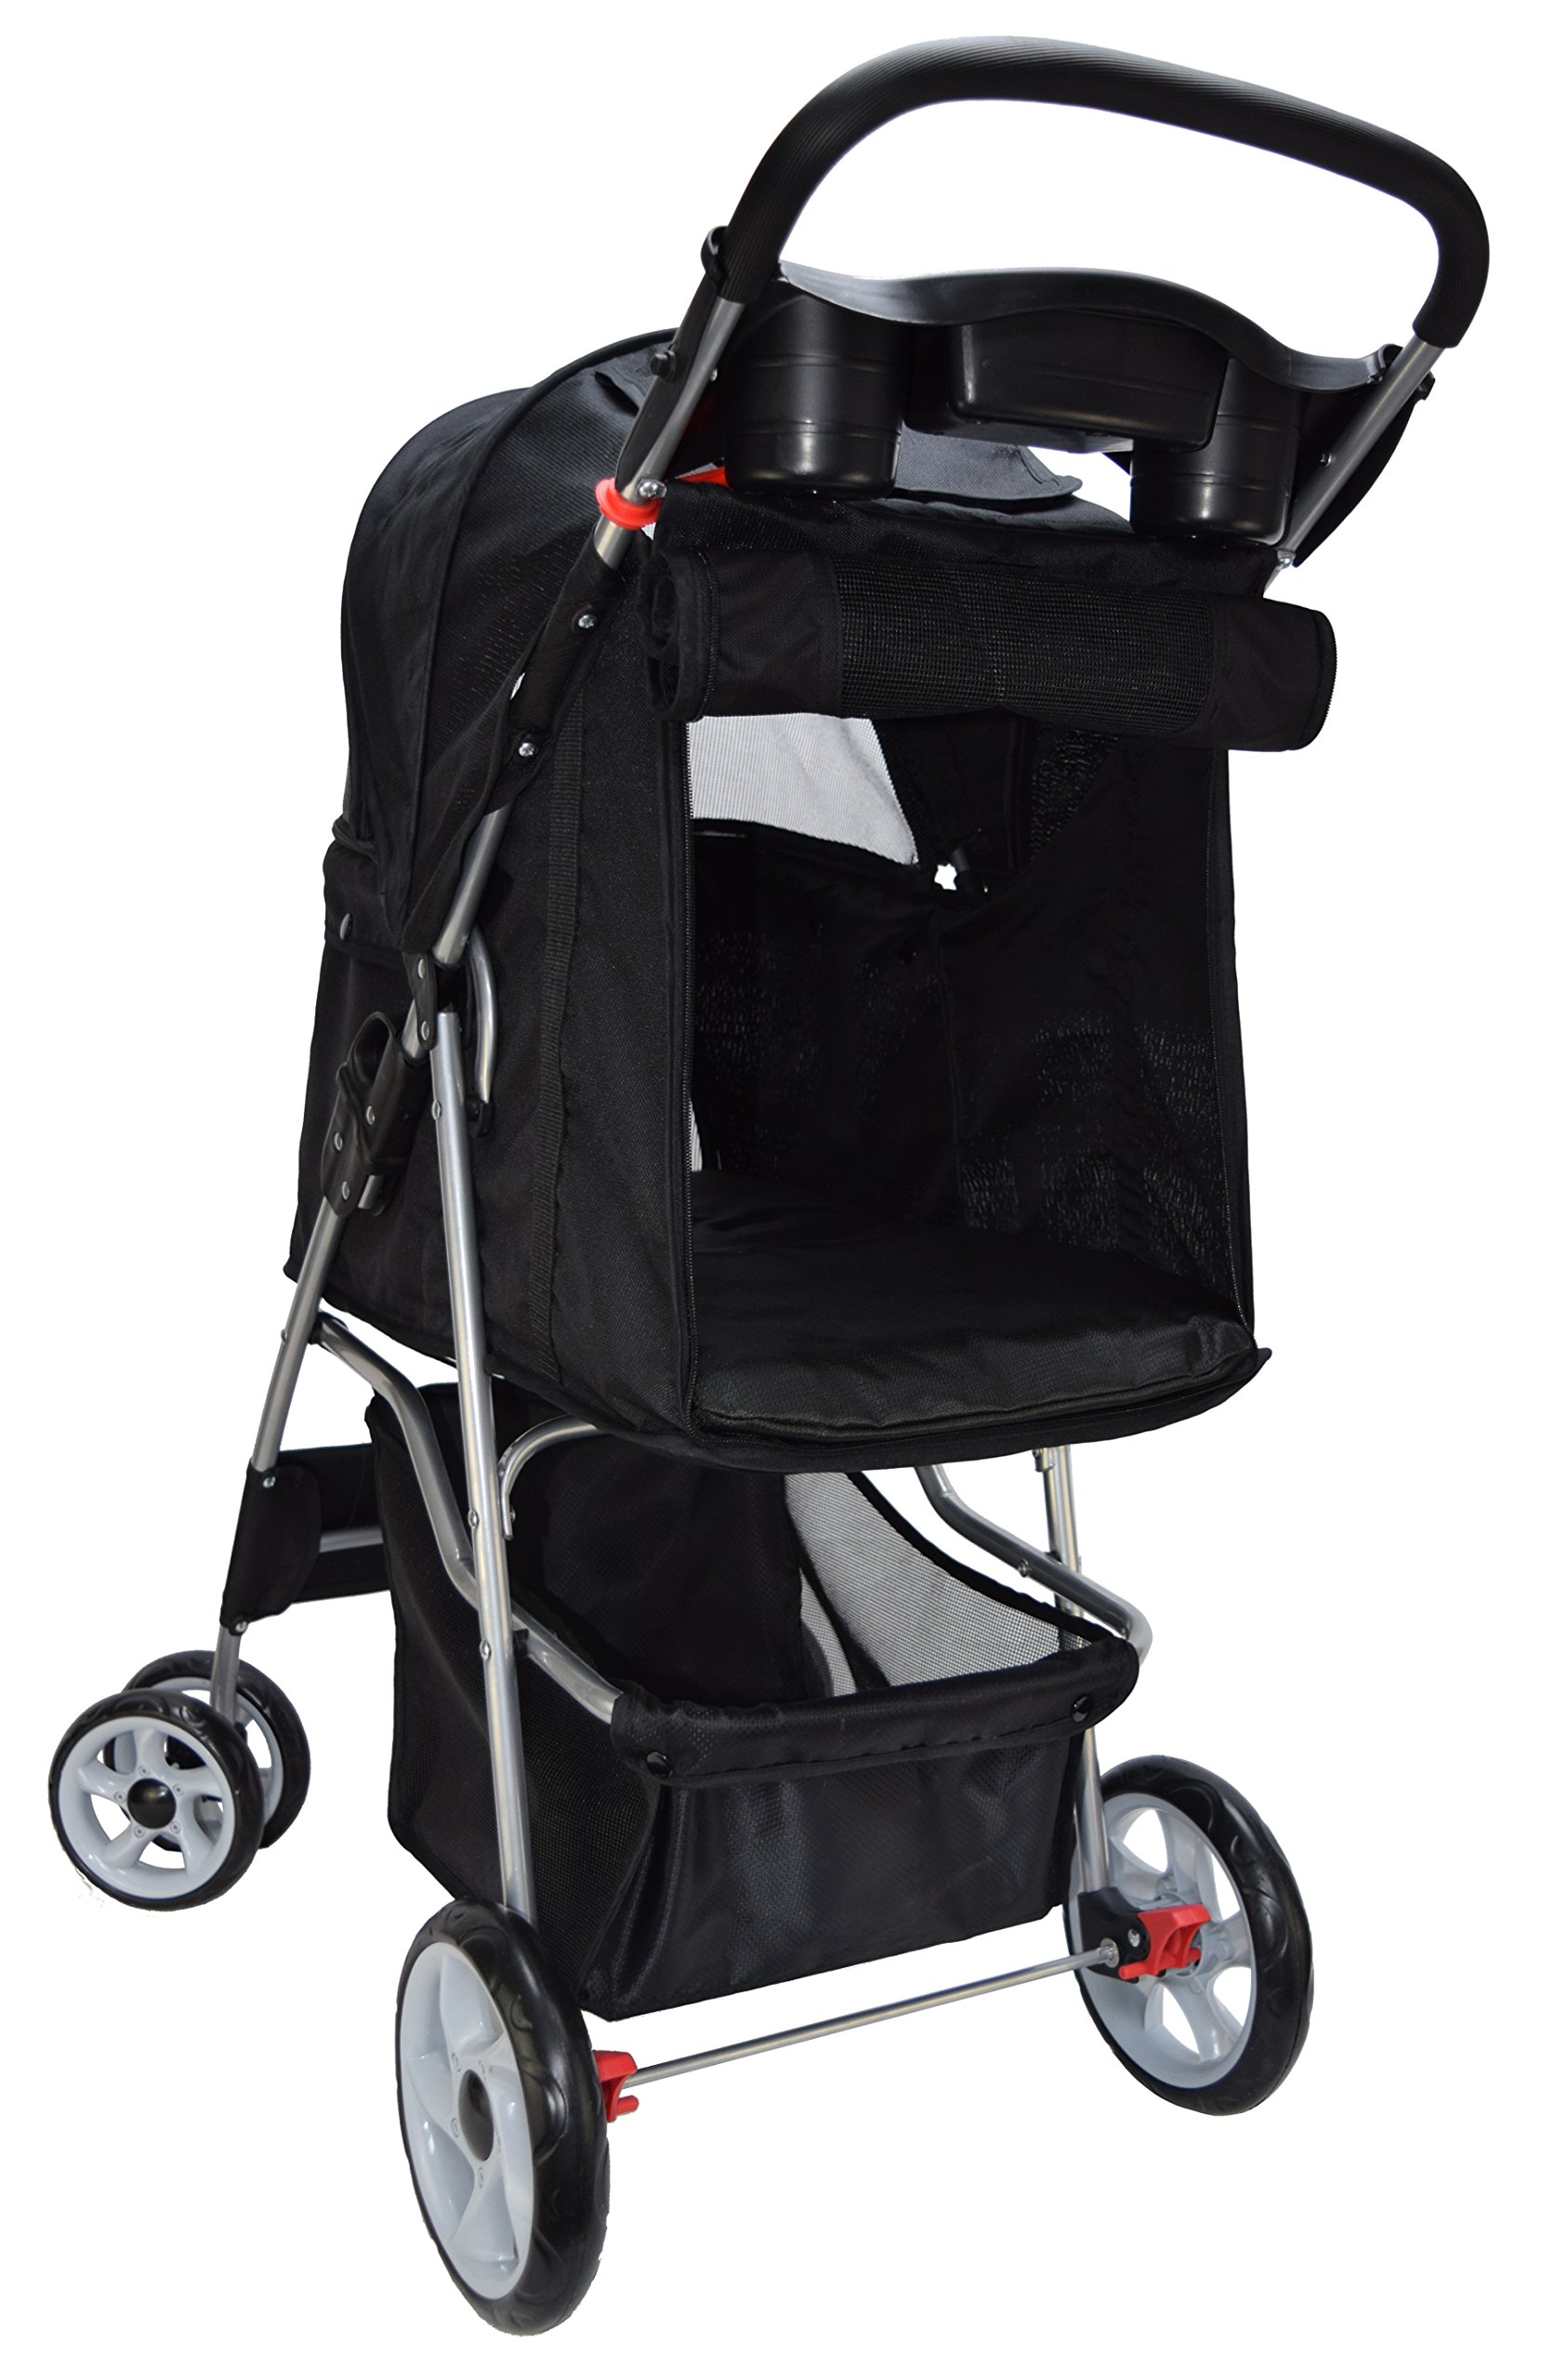 VIVO Four Wheel Pet Stroller, for Cat, Dog and More, Foldable Carrier Strolling Cart, Multiple Colors (Black) by VIVO (Image #10)